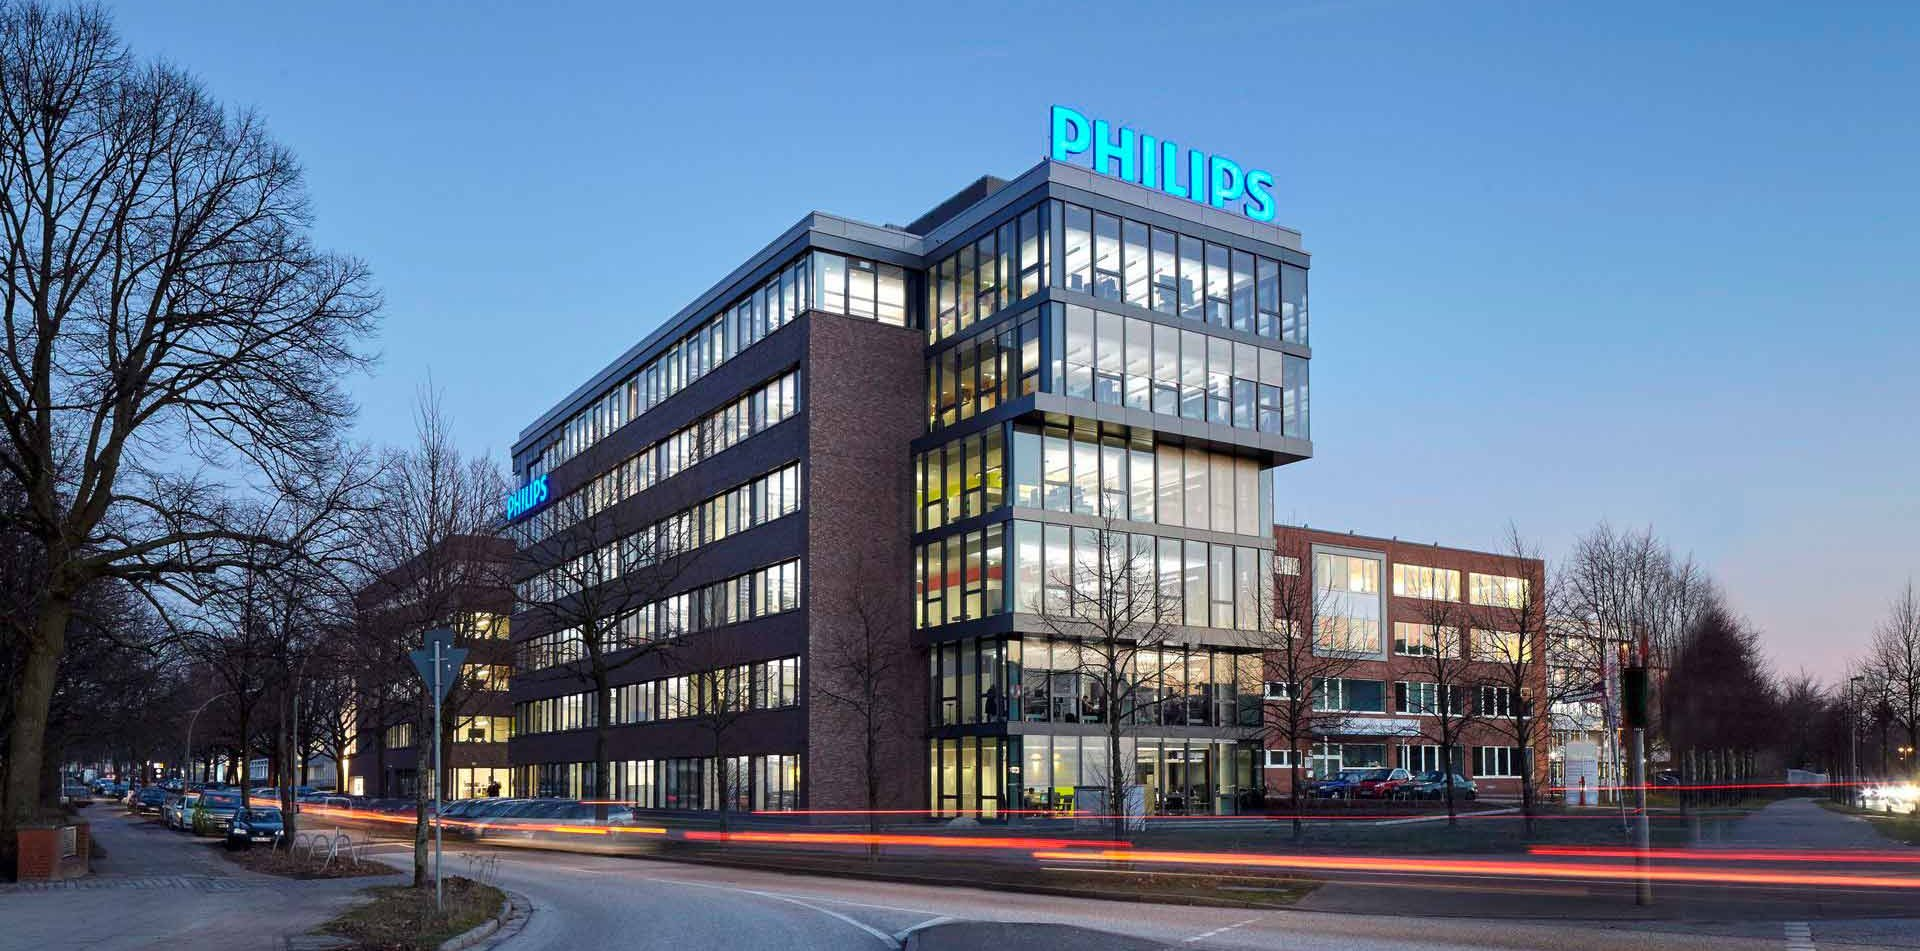 Außenansicht des Philips Headquarters in Hamburg